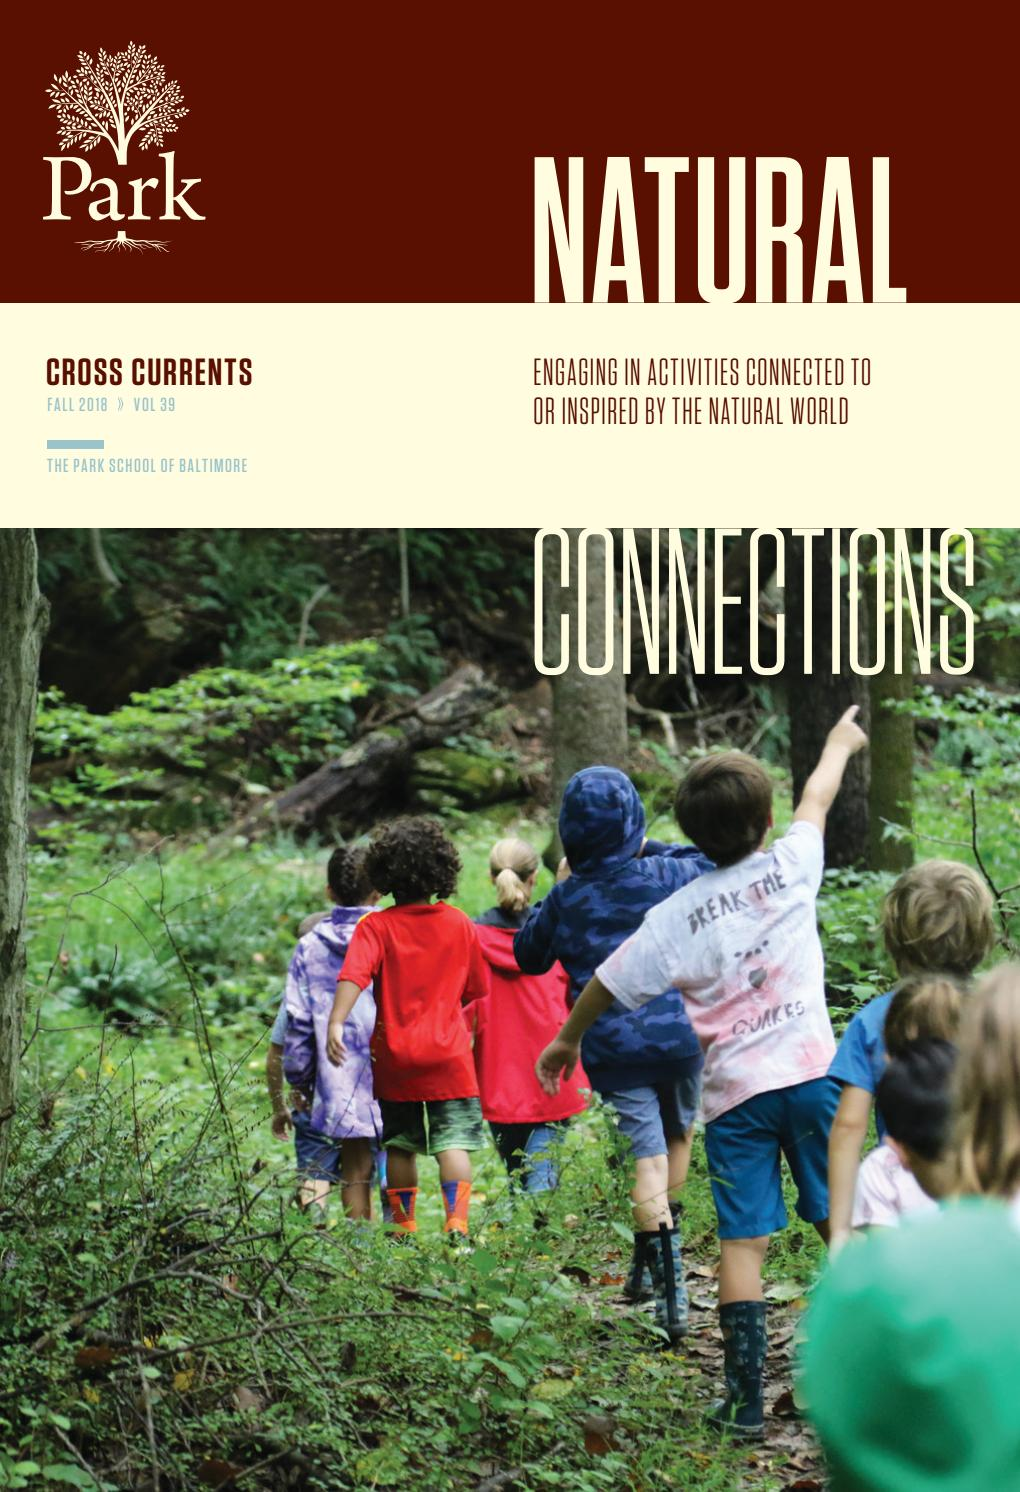 The Park School Cross Currents Magazine and Annual Report